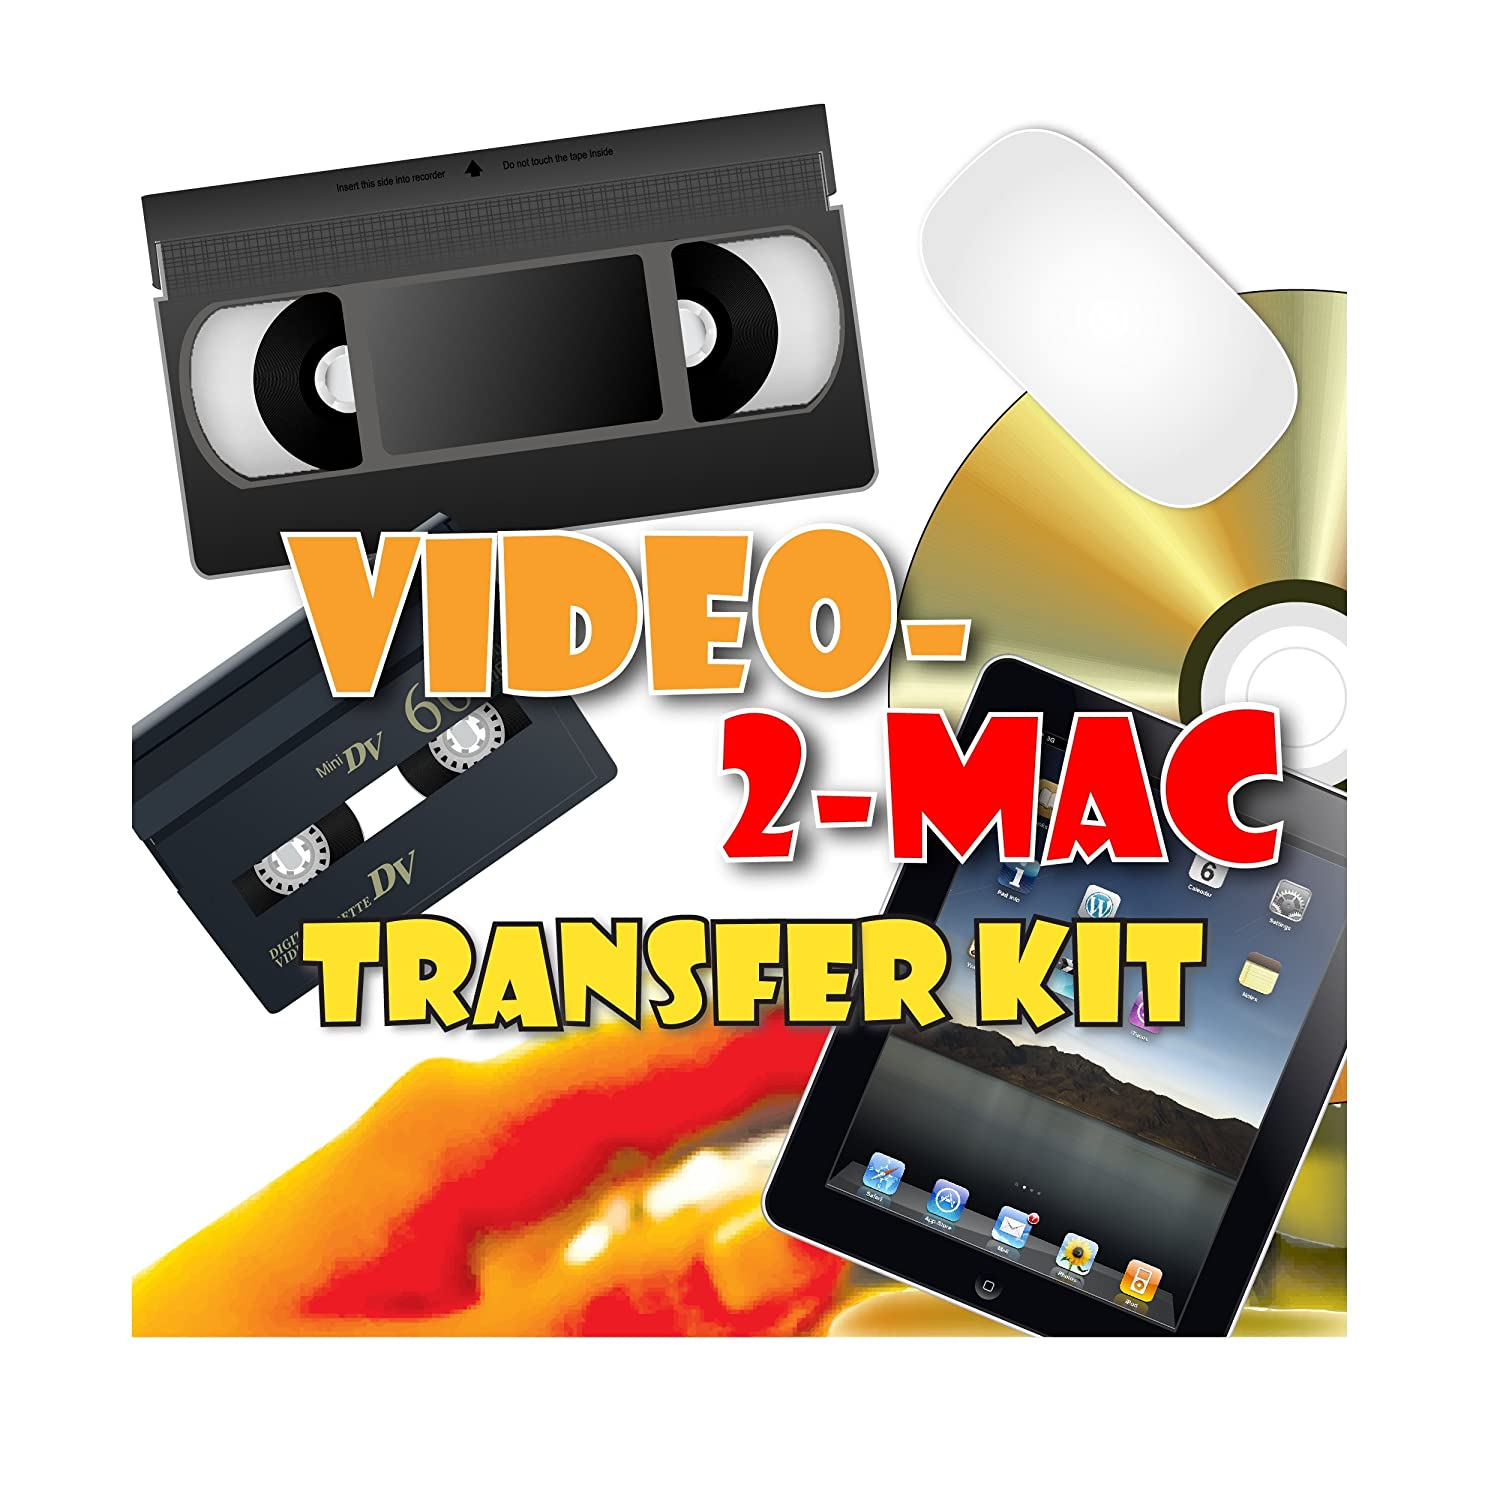 VHS and Camcorder Video Capture Kit  For Mac OSX  Works with Mojave  (10 14), High Sierra (10 13), Sierra (10 12), El Capitan (10 11), Yosemite